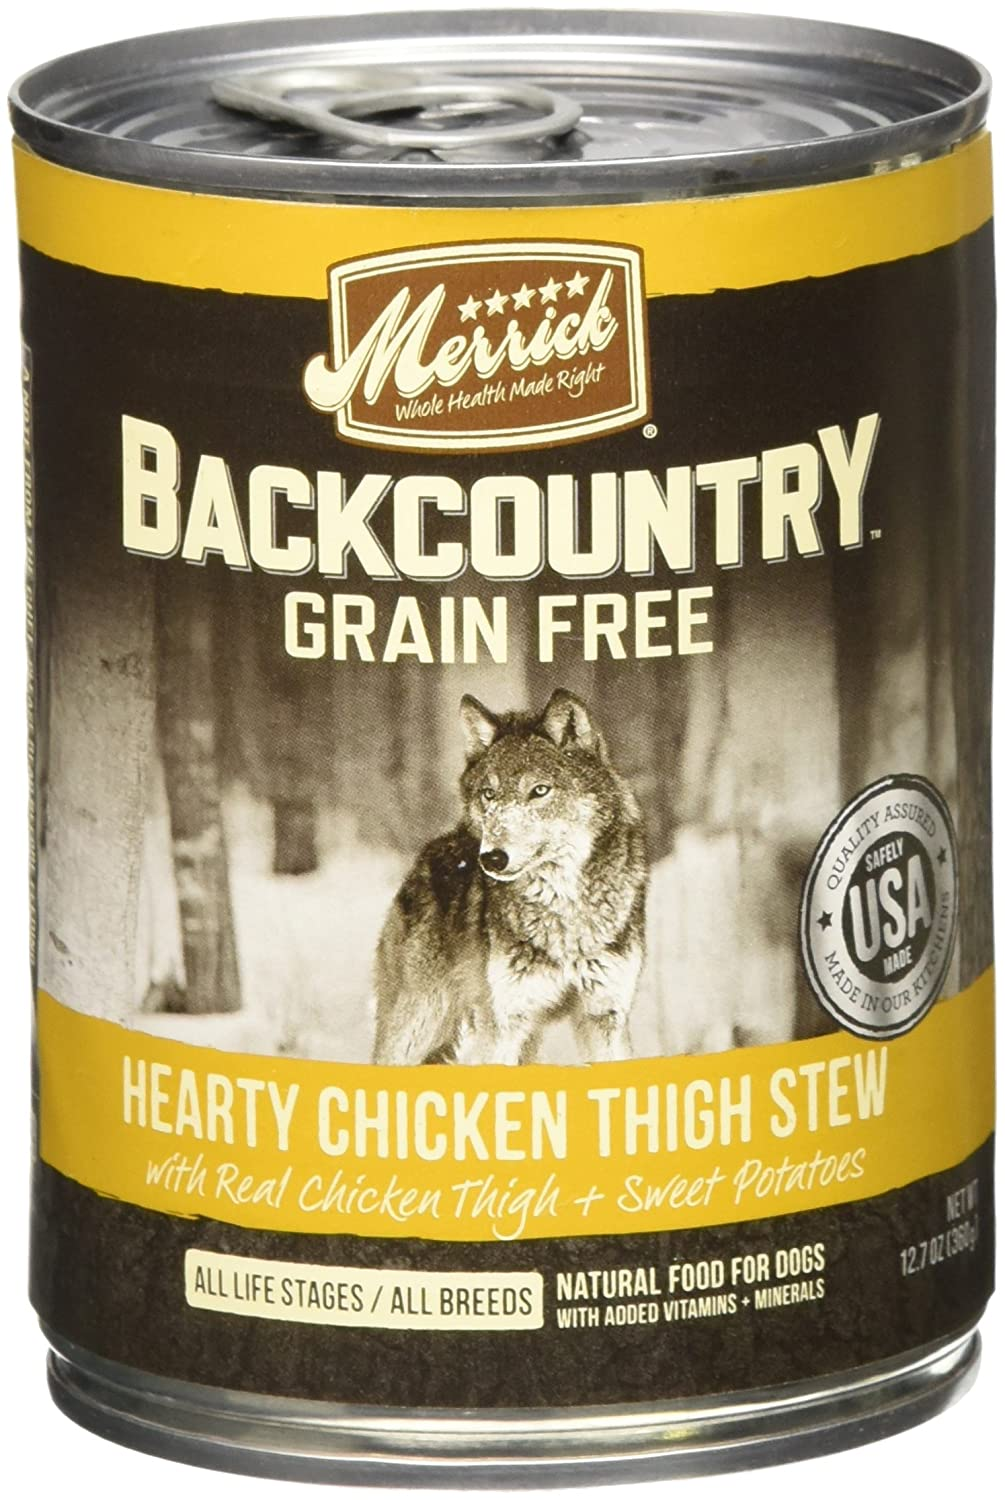 Merrick Backcountry – Hearty Chicken Thigh Stew – 12.7 Oz – 12 Ct